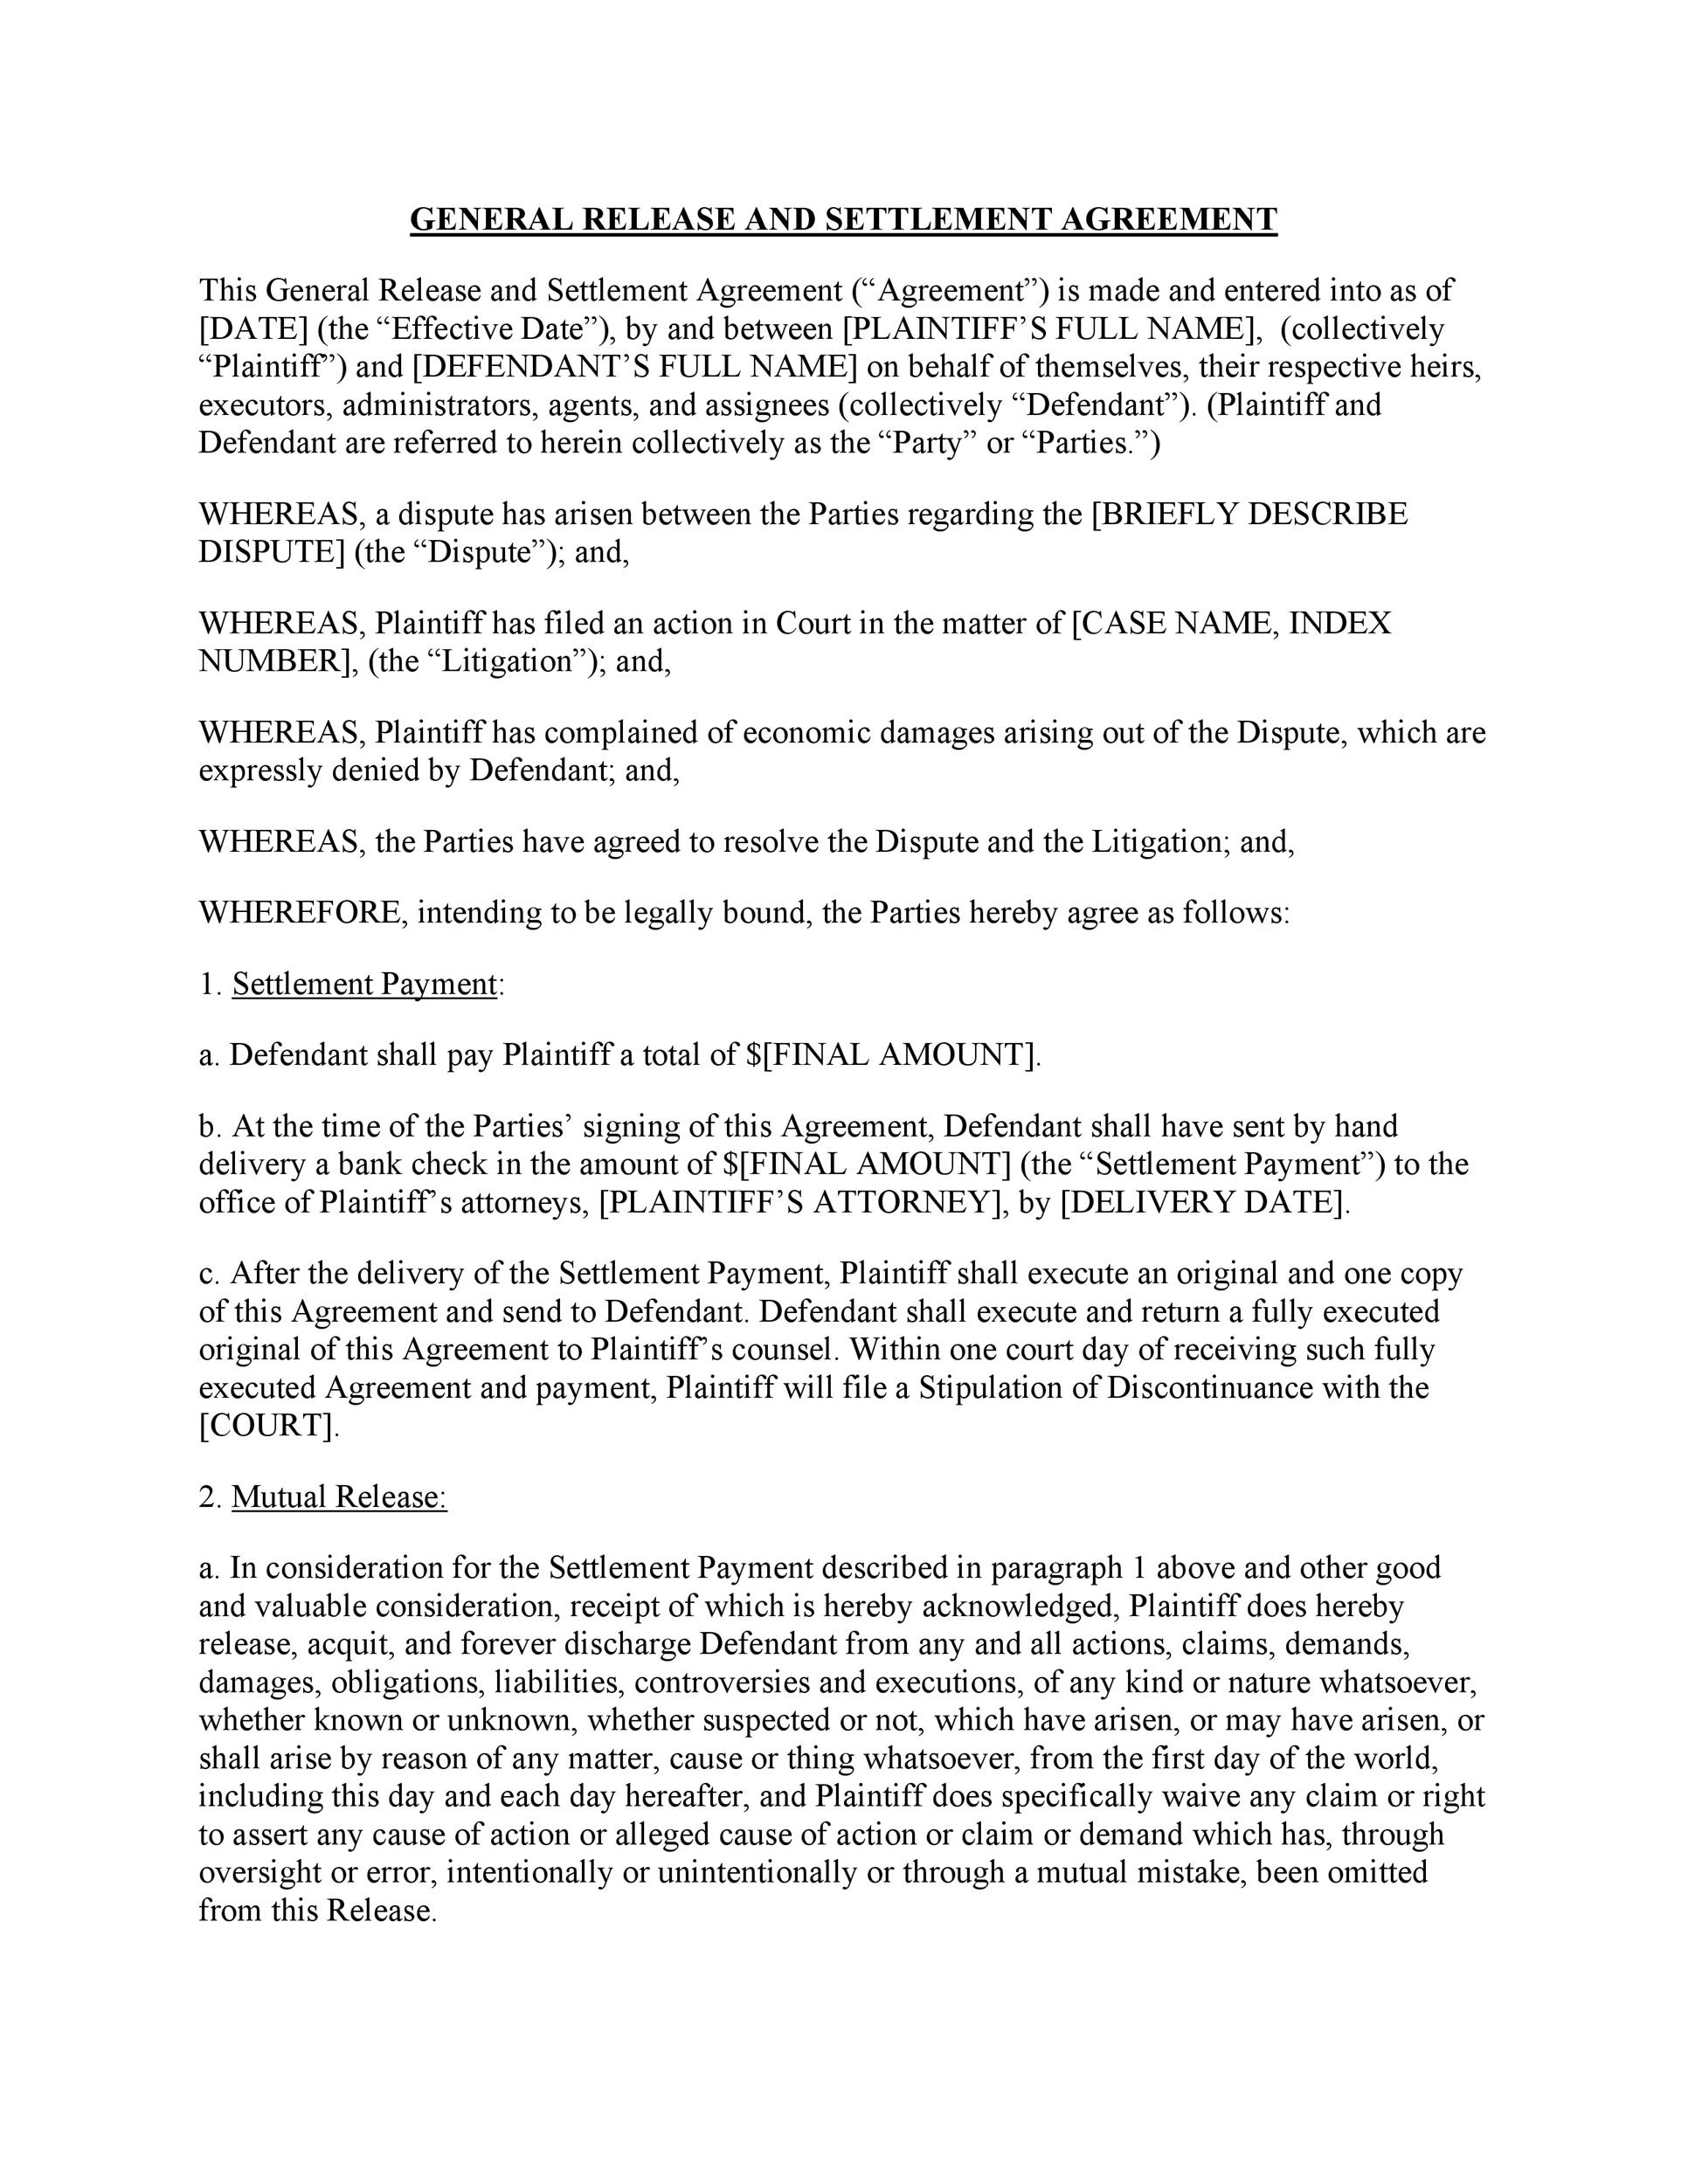 Free settlement agreement 04